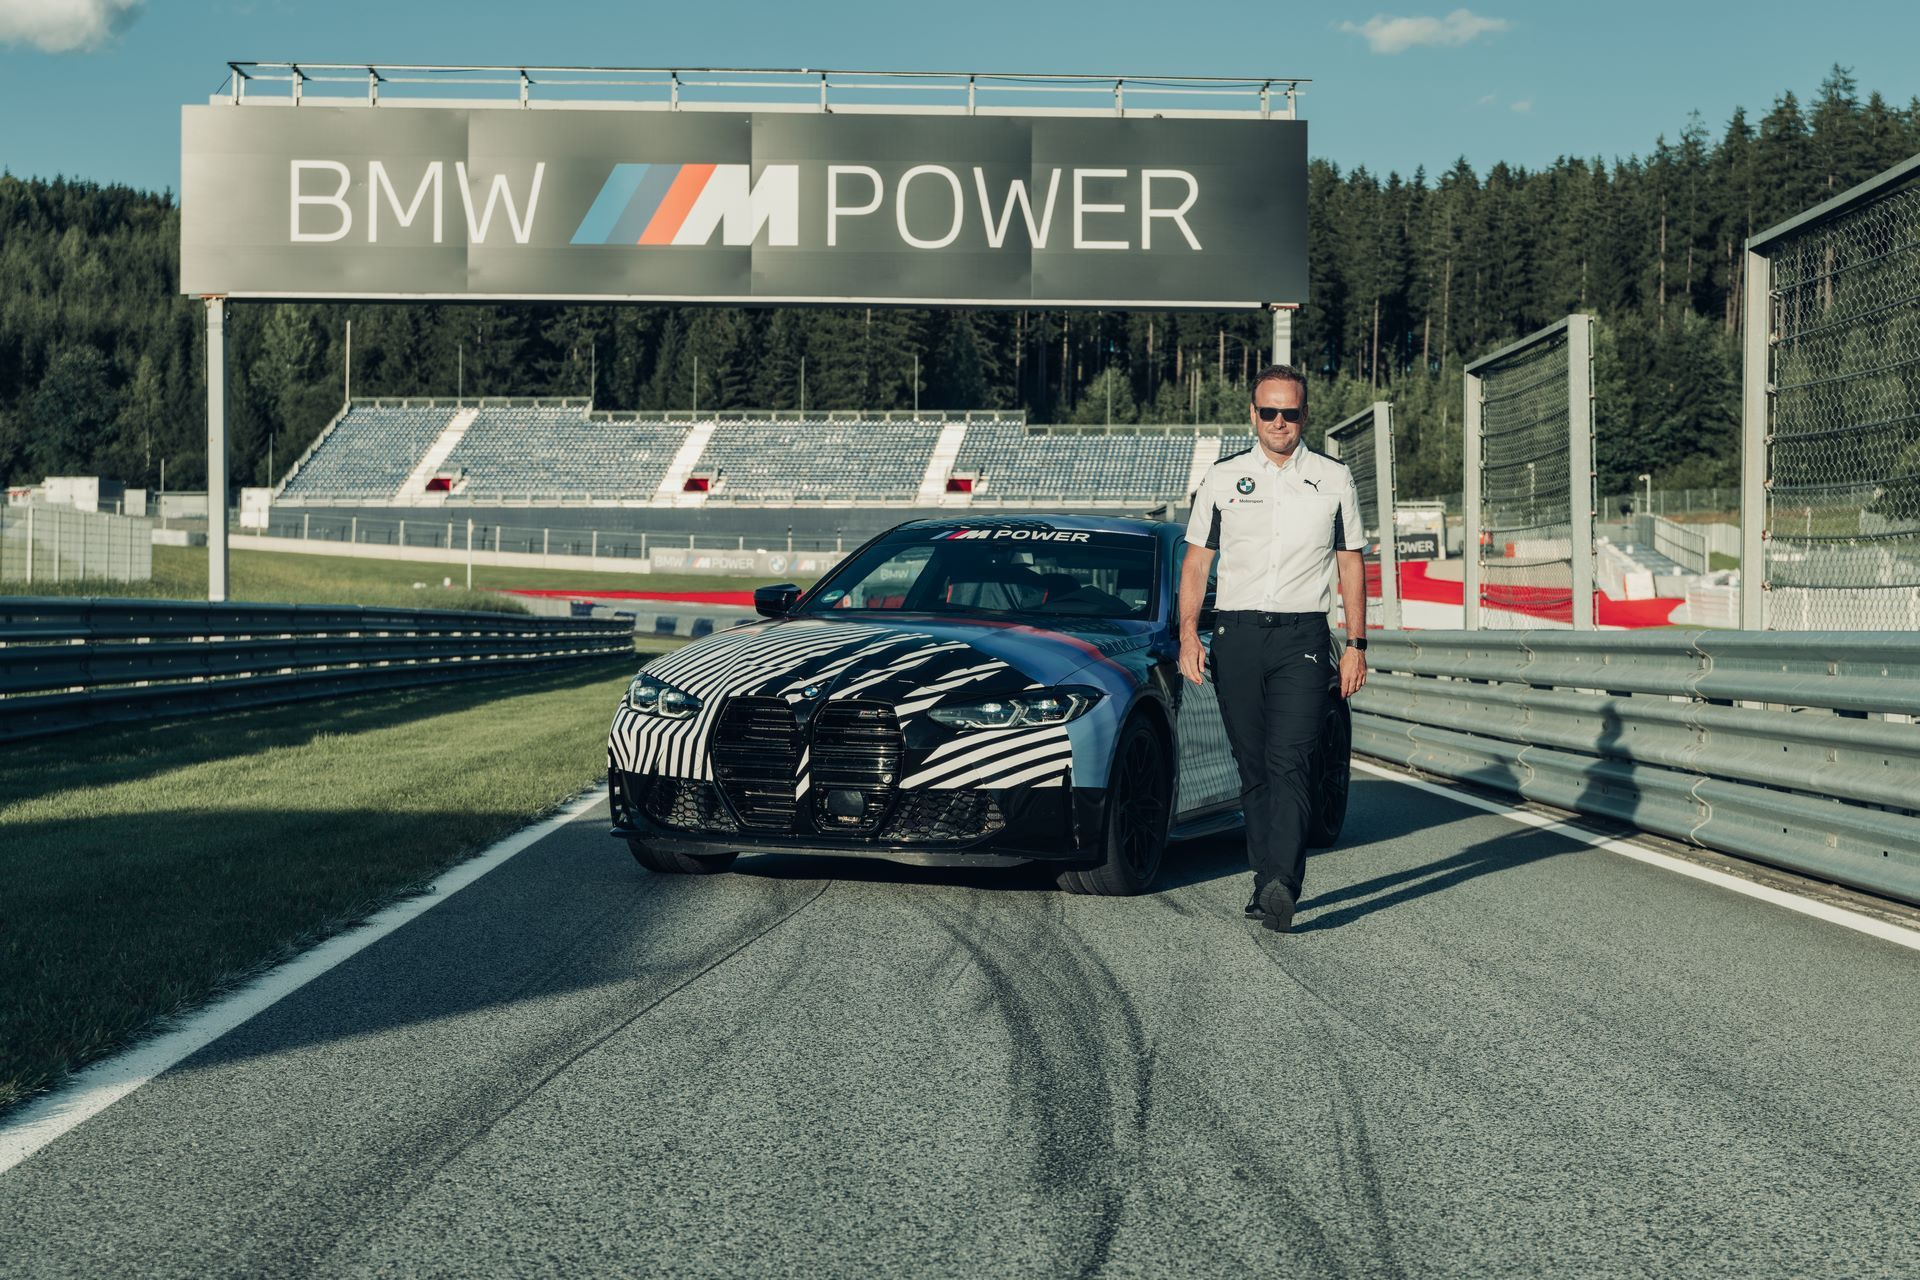 New-BMW-M4-Coupe-and-BMW-M4-GT3-prototypes-9